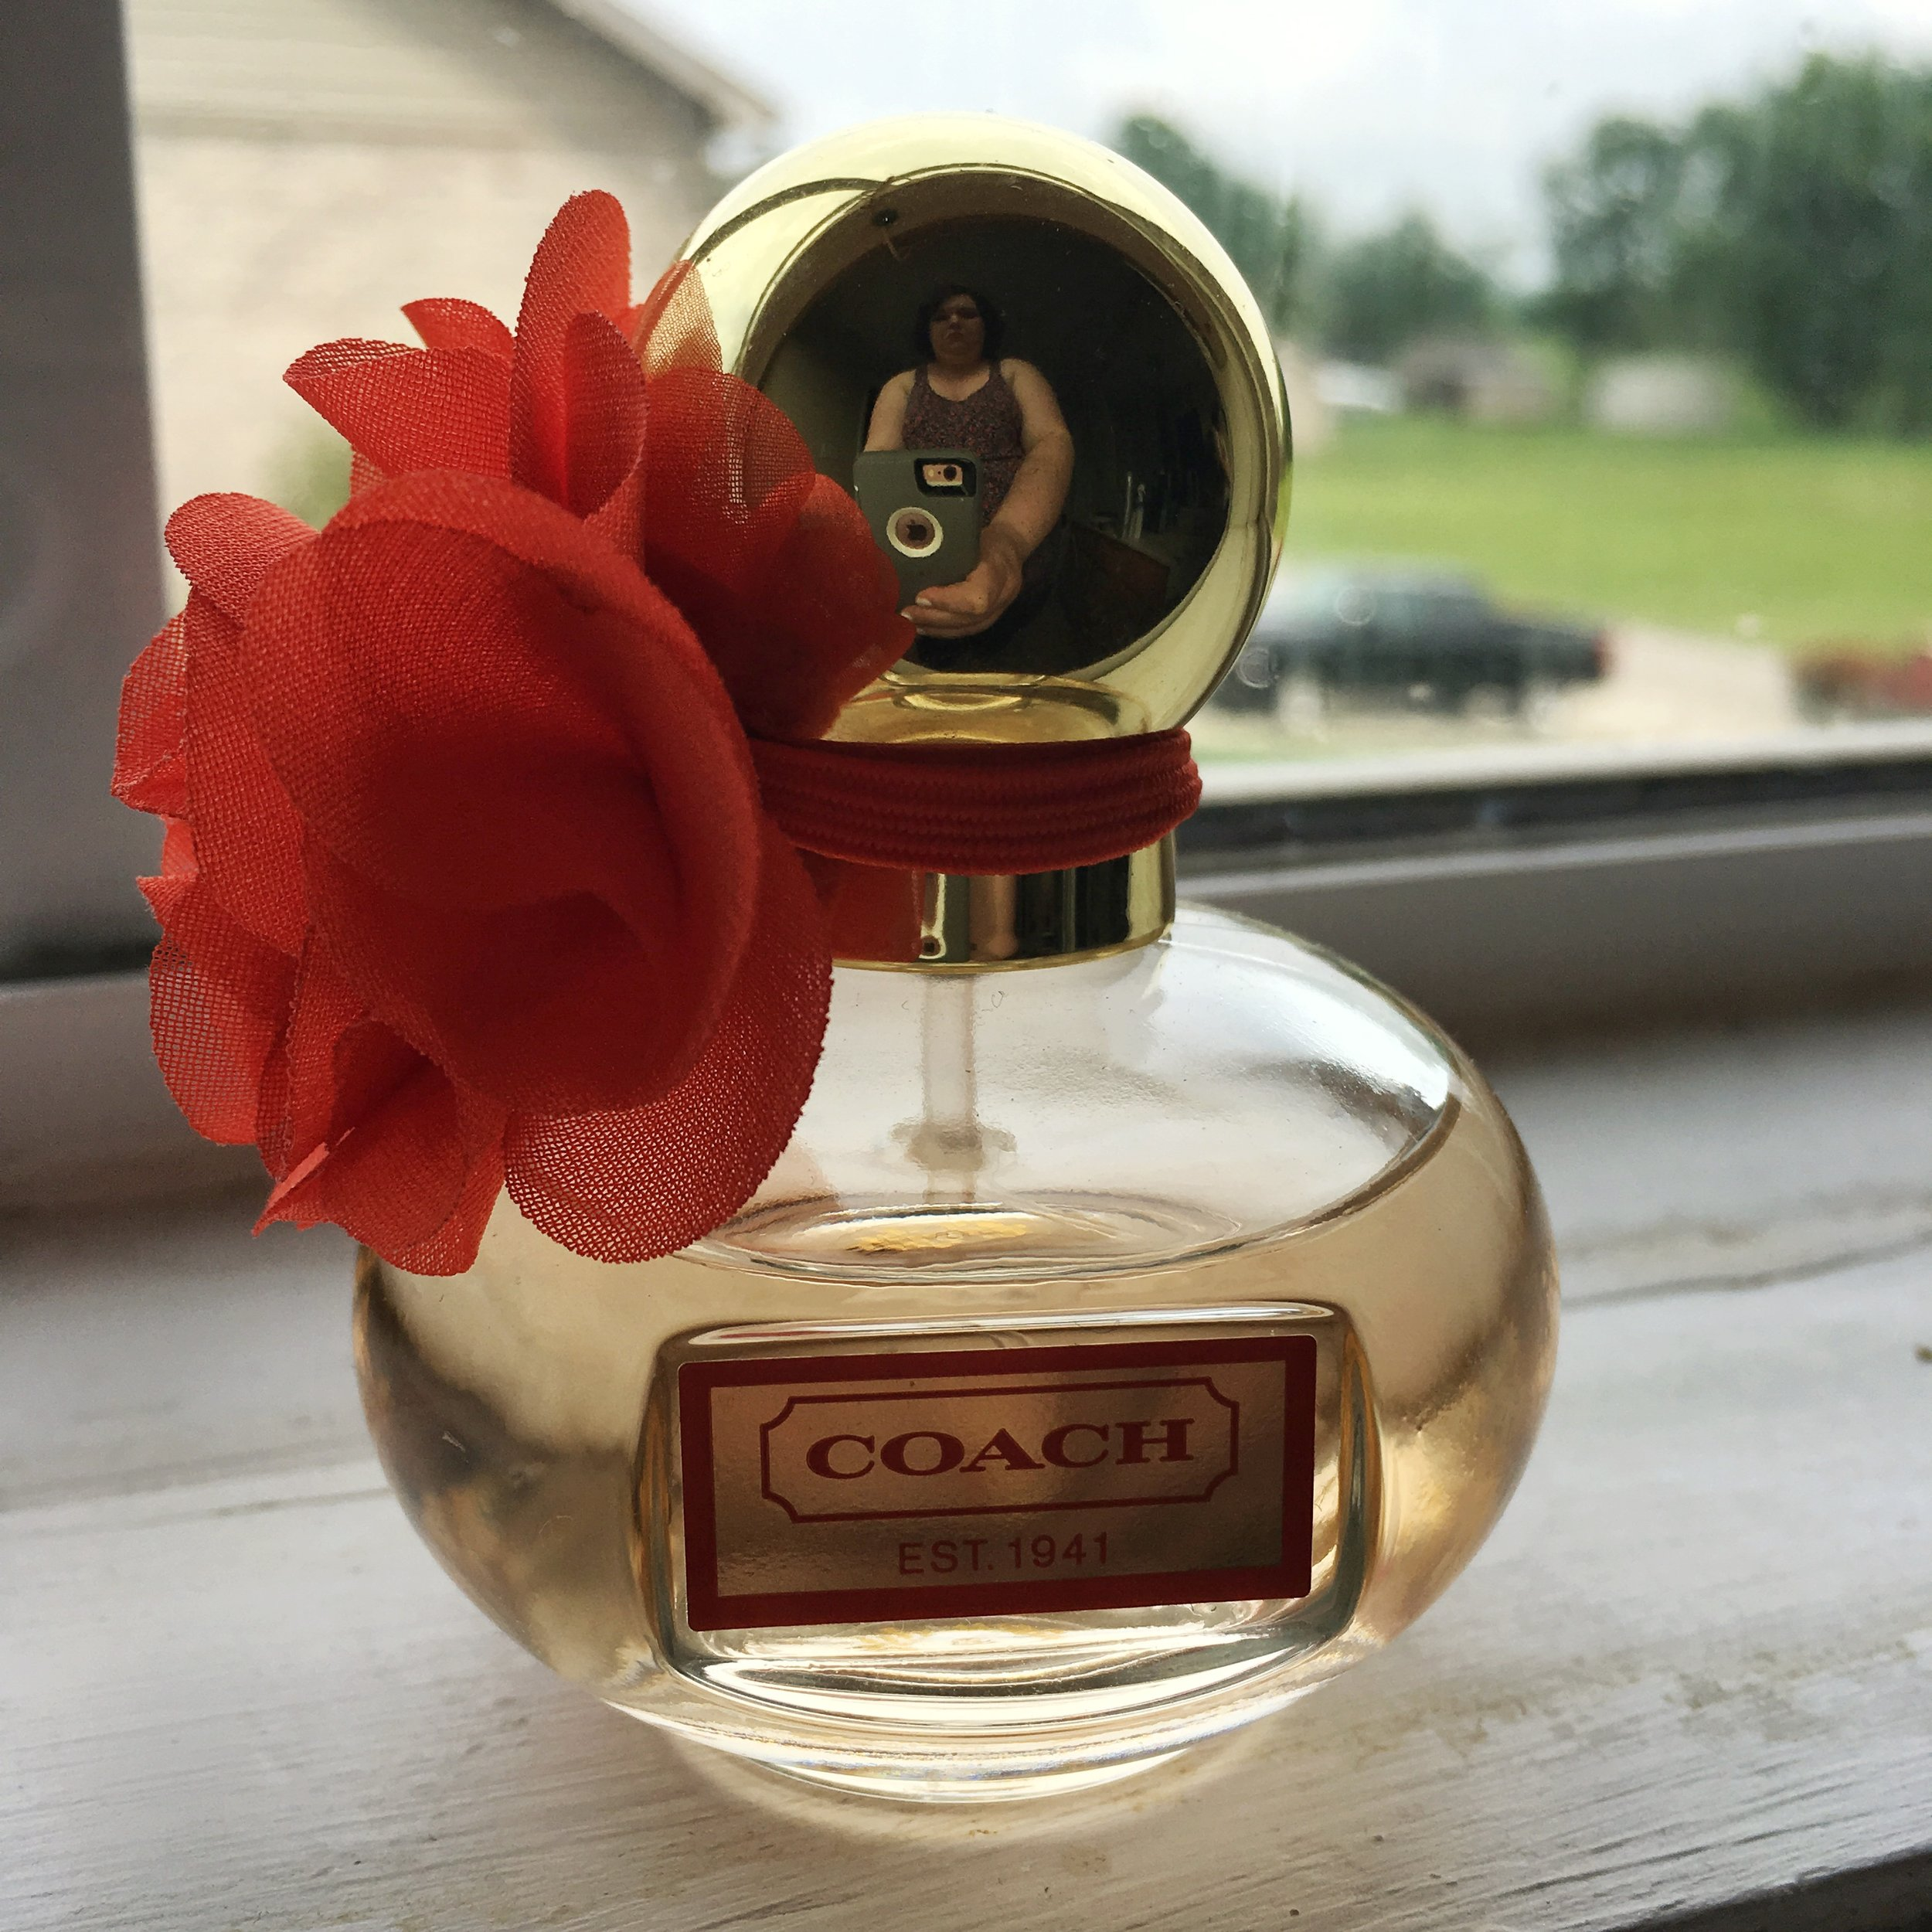 Coach Poppy Perfume. And yes, that's me in the lid, taking a picture in my lounge clothing. I will never be a photographer at this rate :)